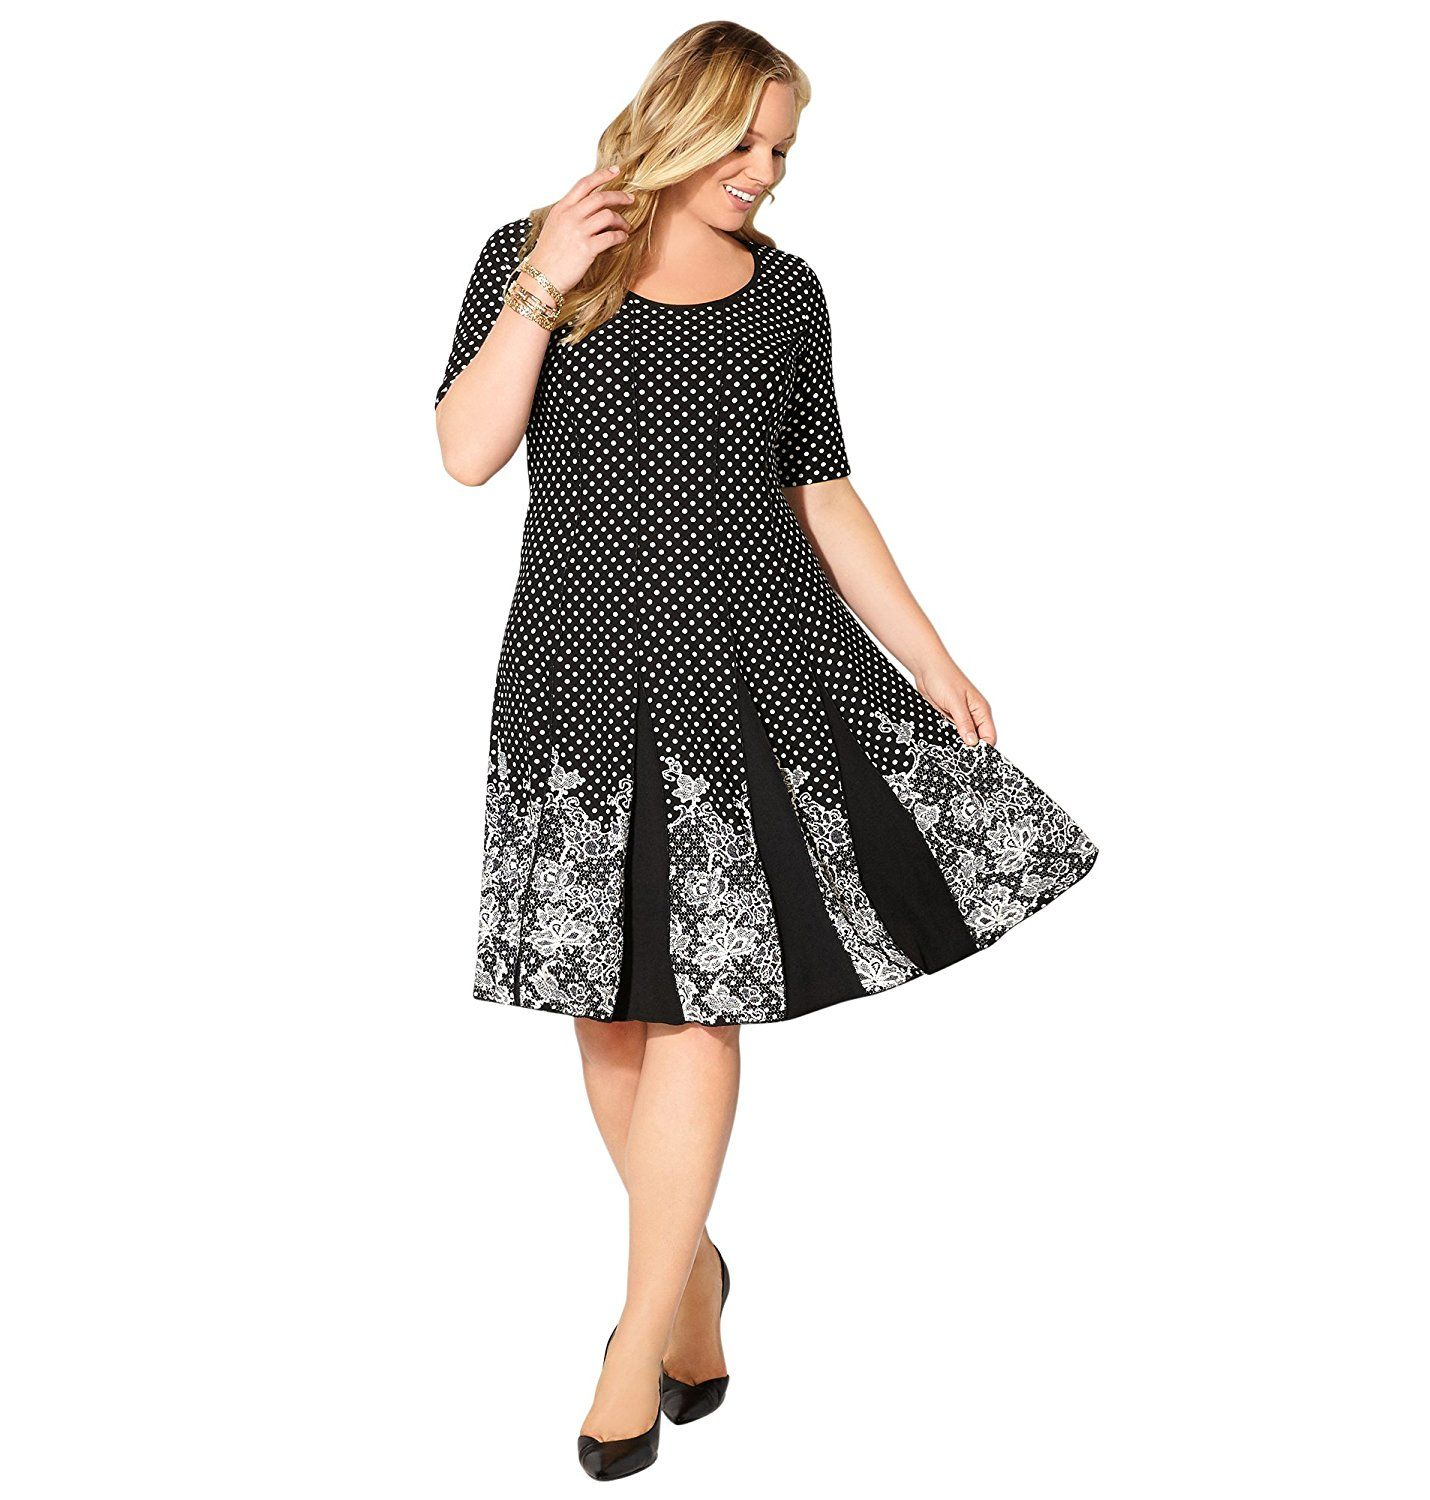 Avenue Women S Seamed Lace Dot Fit And Flare Dress Awesome Product Click The Image Plus Size Dresses Fit And Flare Dress Plus Size Dresses Fit And Flare [ 1500 x 1430 Pixel ]